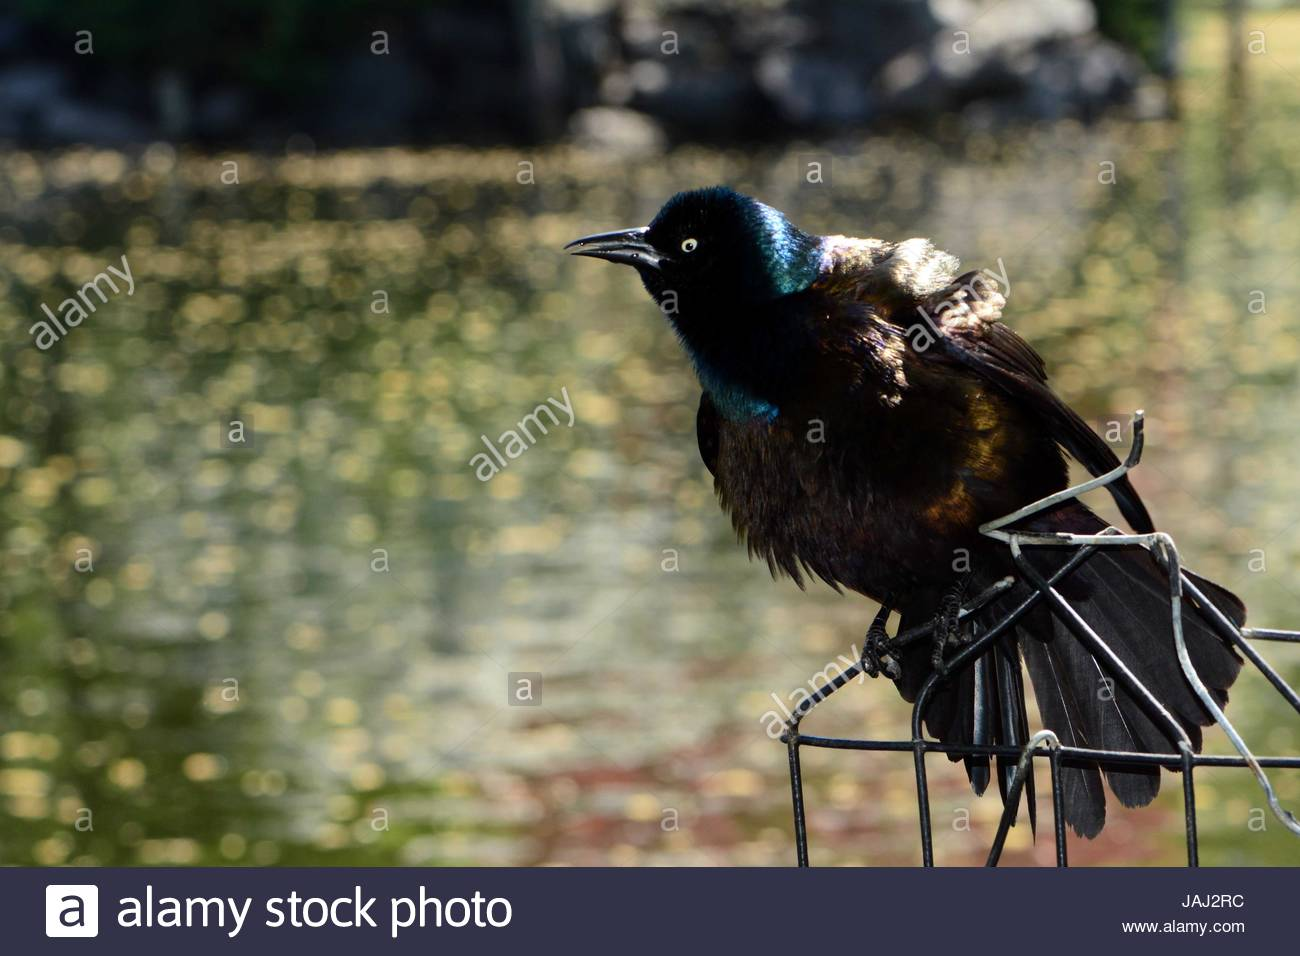 A male common grackle, Quiscalus quiscula, displaying from a wire perch. - Stock Image